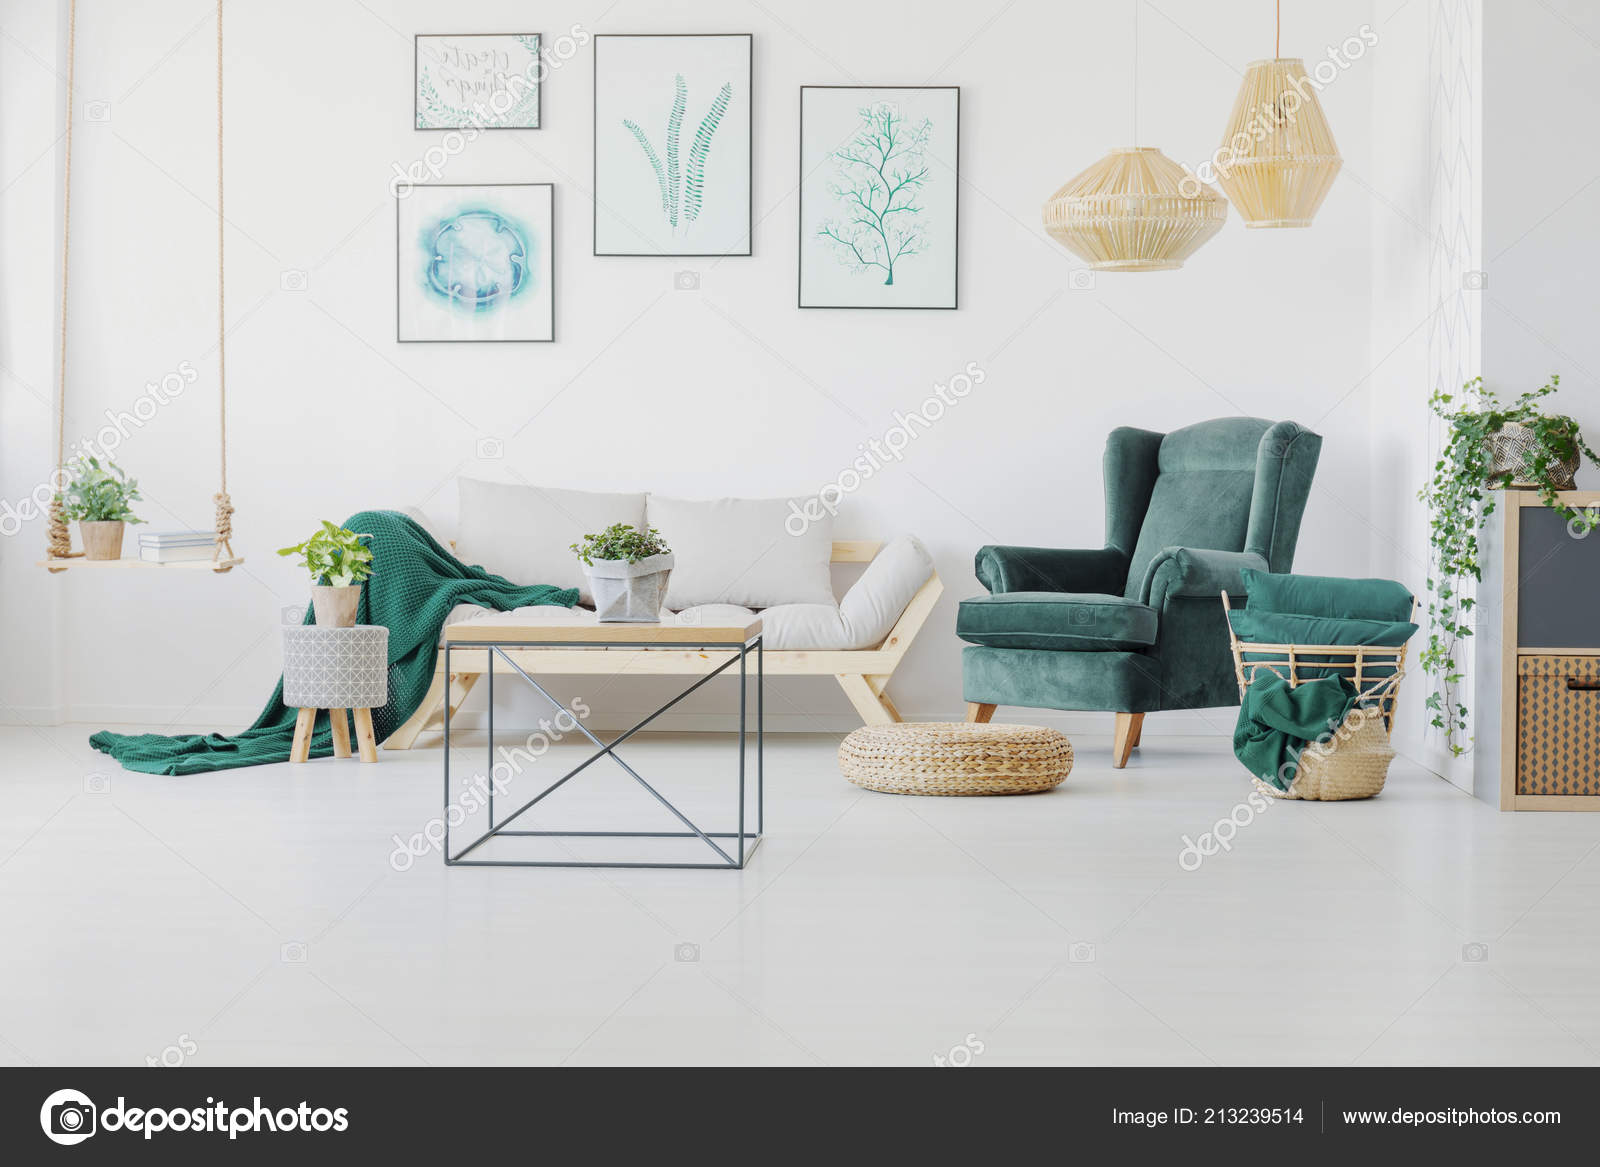 Green Accents Graphics Modern Coffee Table Living Room Interior Real U2014  Stock Photo